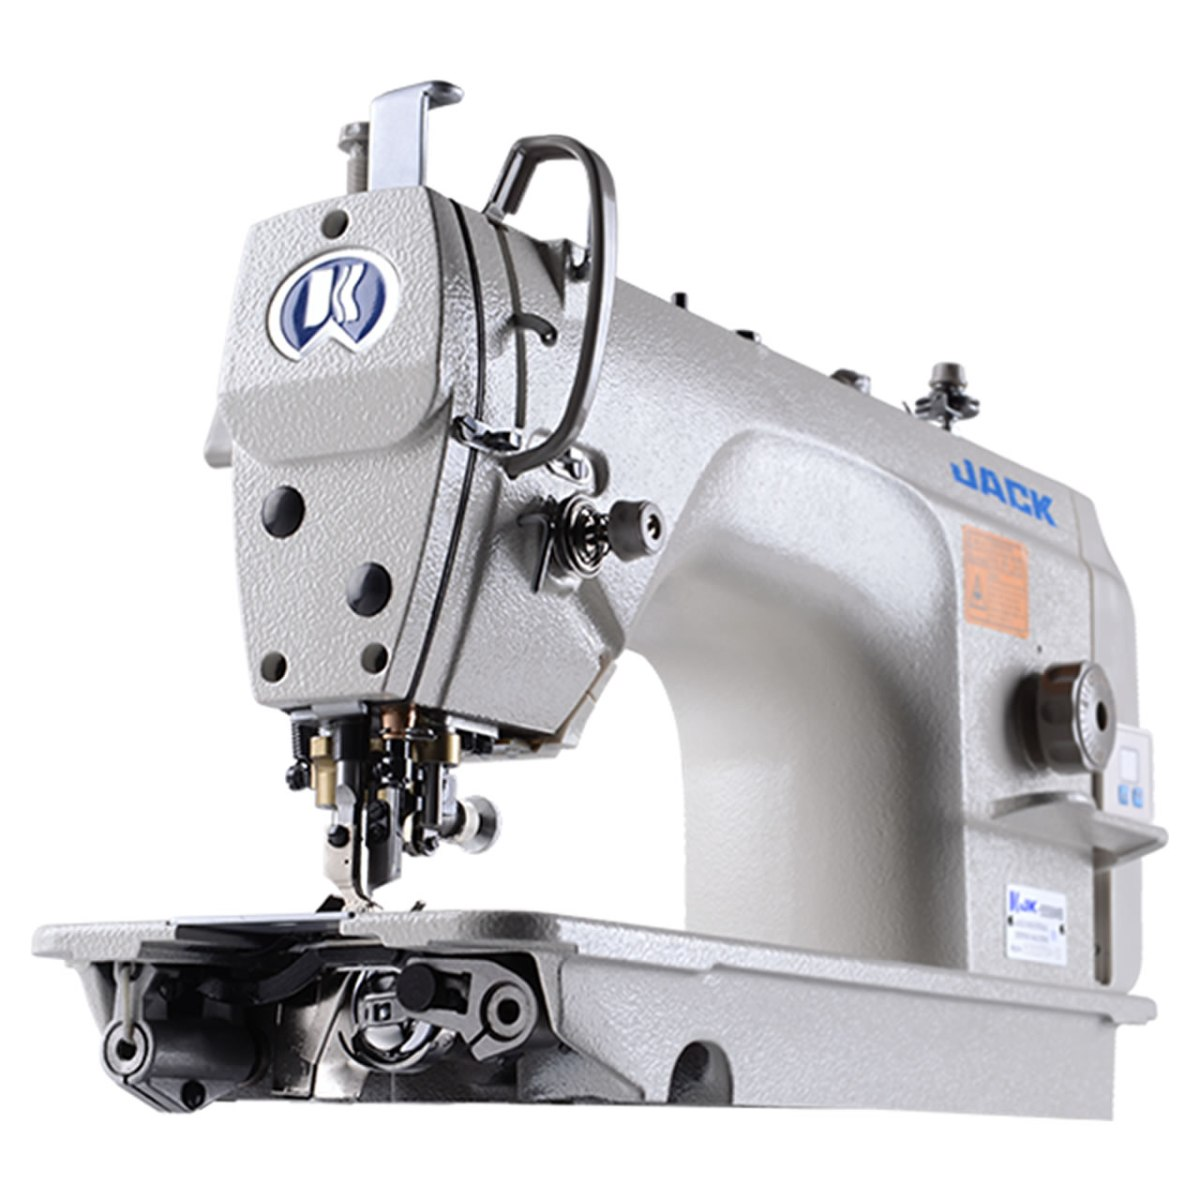 Jack JK-5558WB – Find Sewing Machine